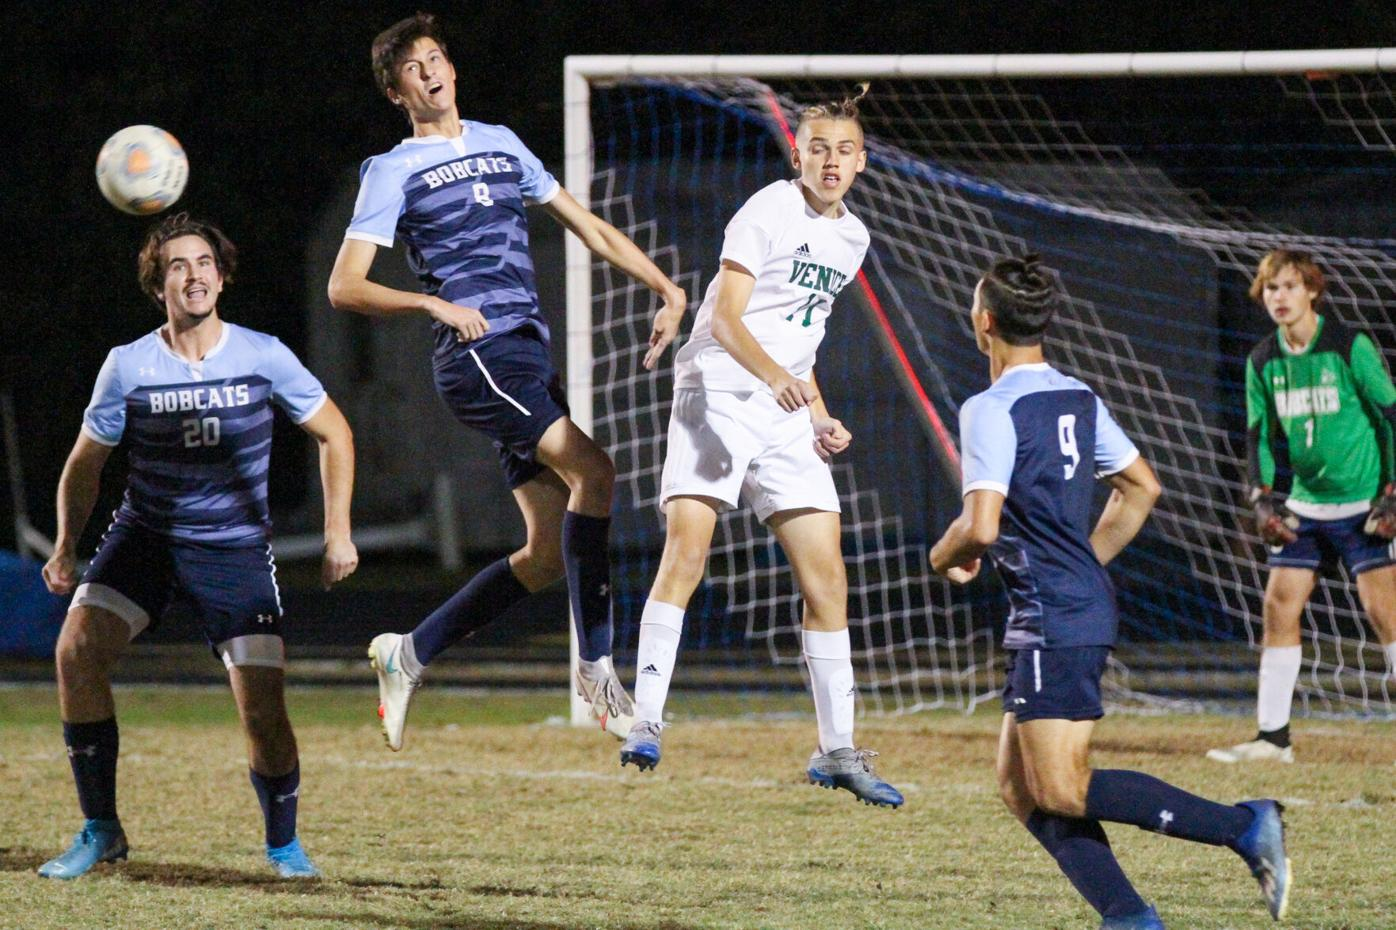 North Port's Justin Crehore and Venice's Luca Rueda